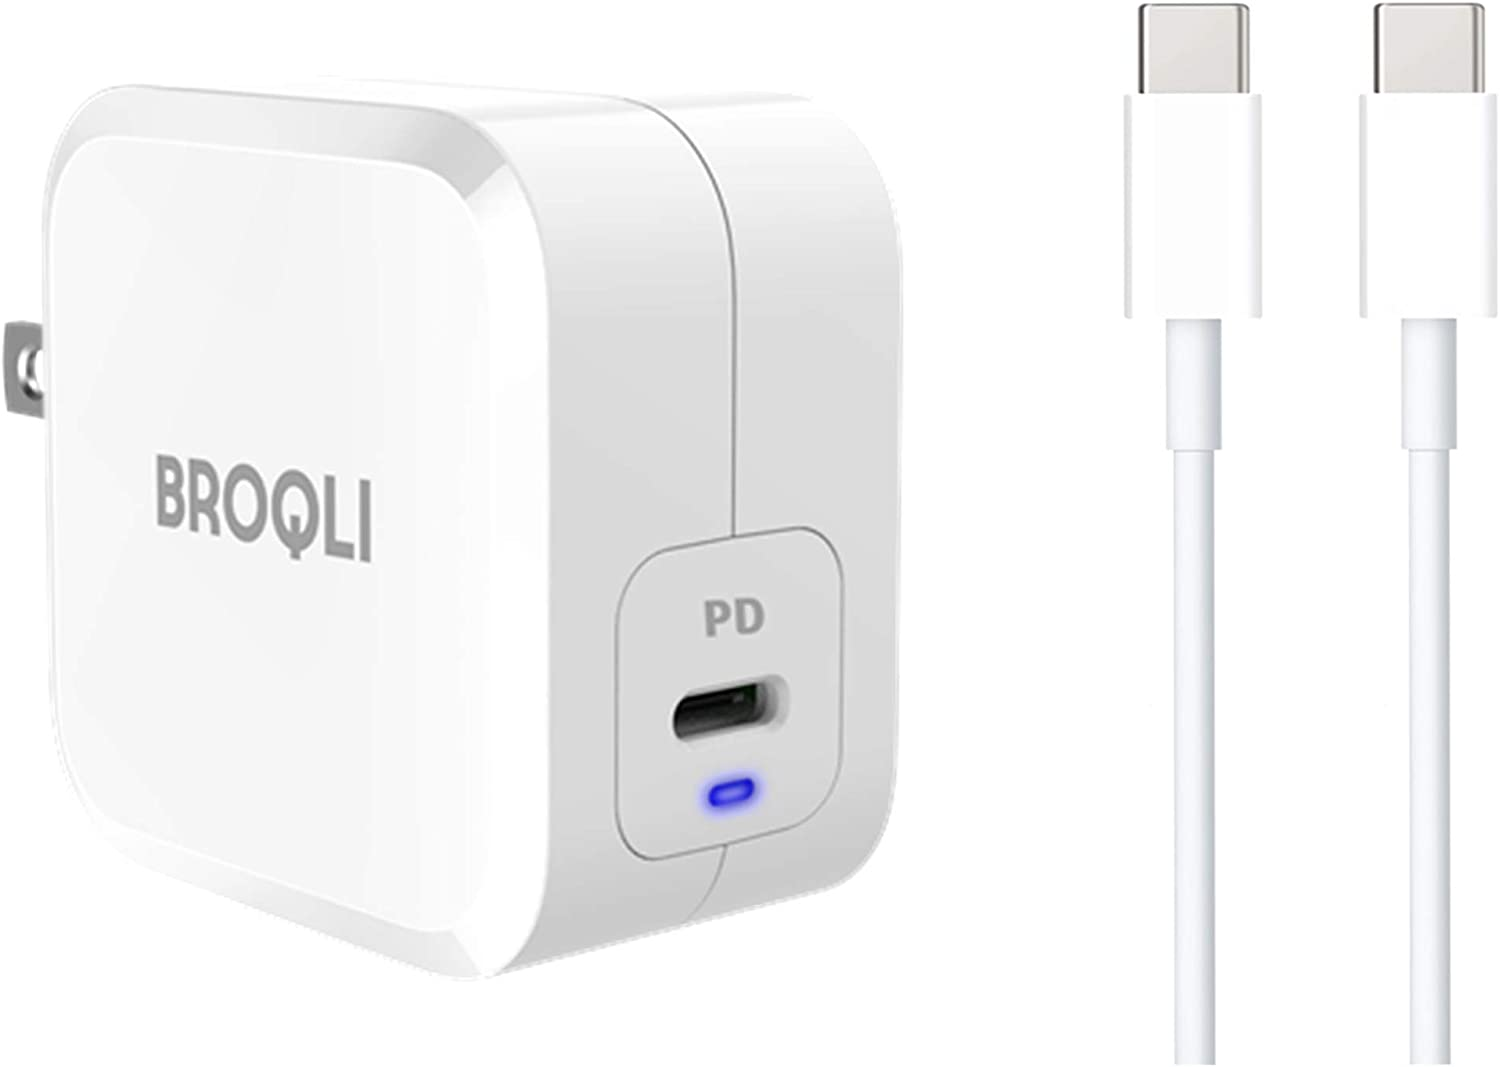 BROQLI 61W Pebble GaN Tech USB Type C Port Foldable Compact Fast Wall Charger for Laptops, MacBook Pro/Air iPad Pro, iPhone Xs Max/XR/X, Galaxy with 6.7ft Fast Charging Cable [20V-5A/100W] (White)